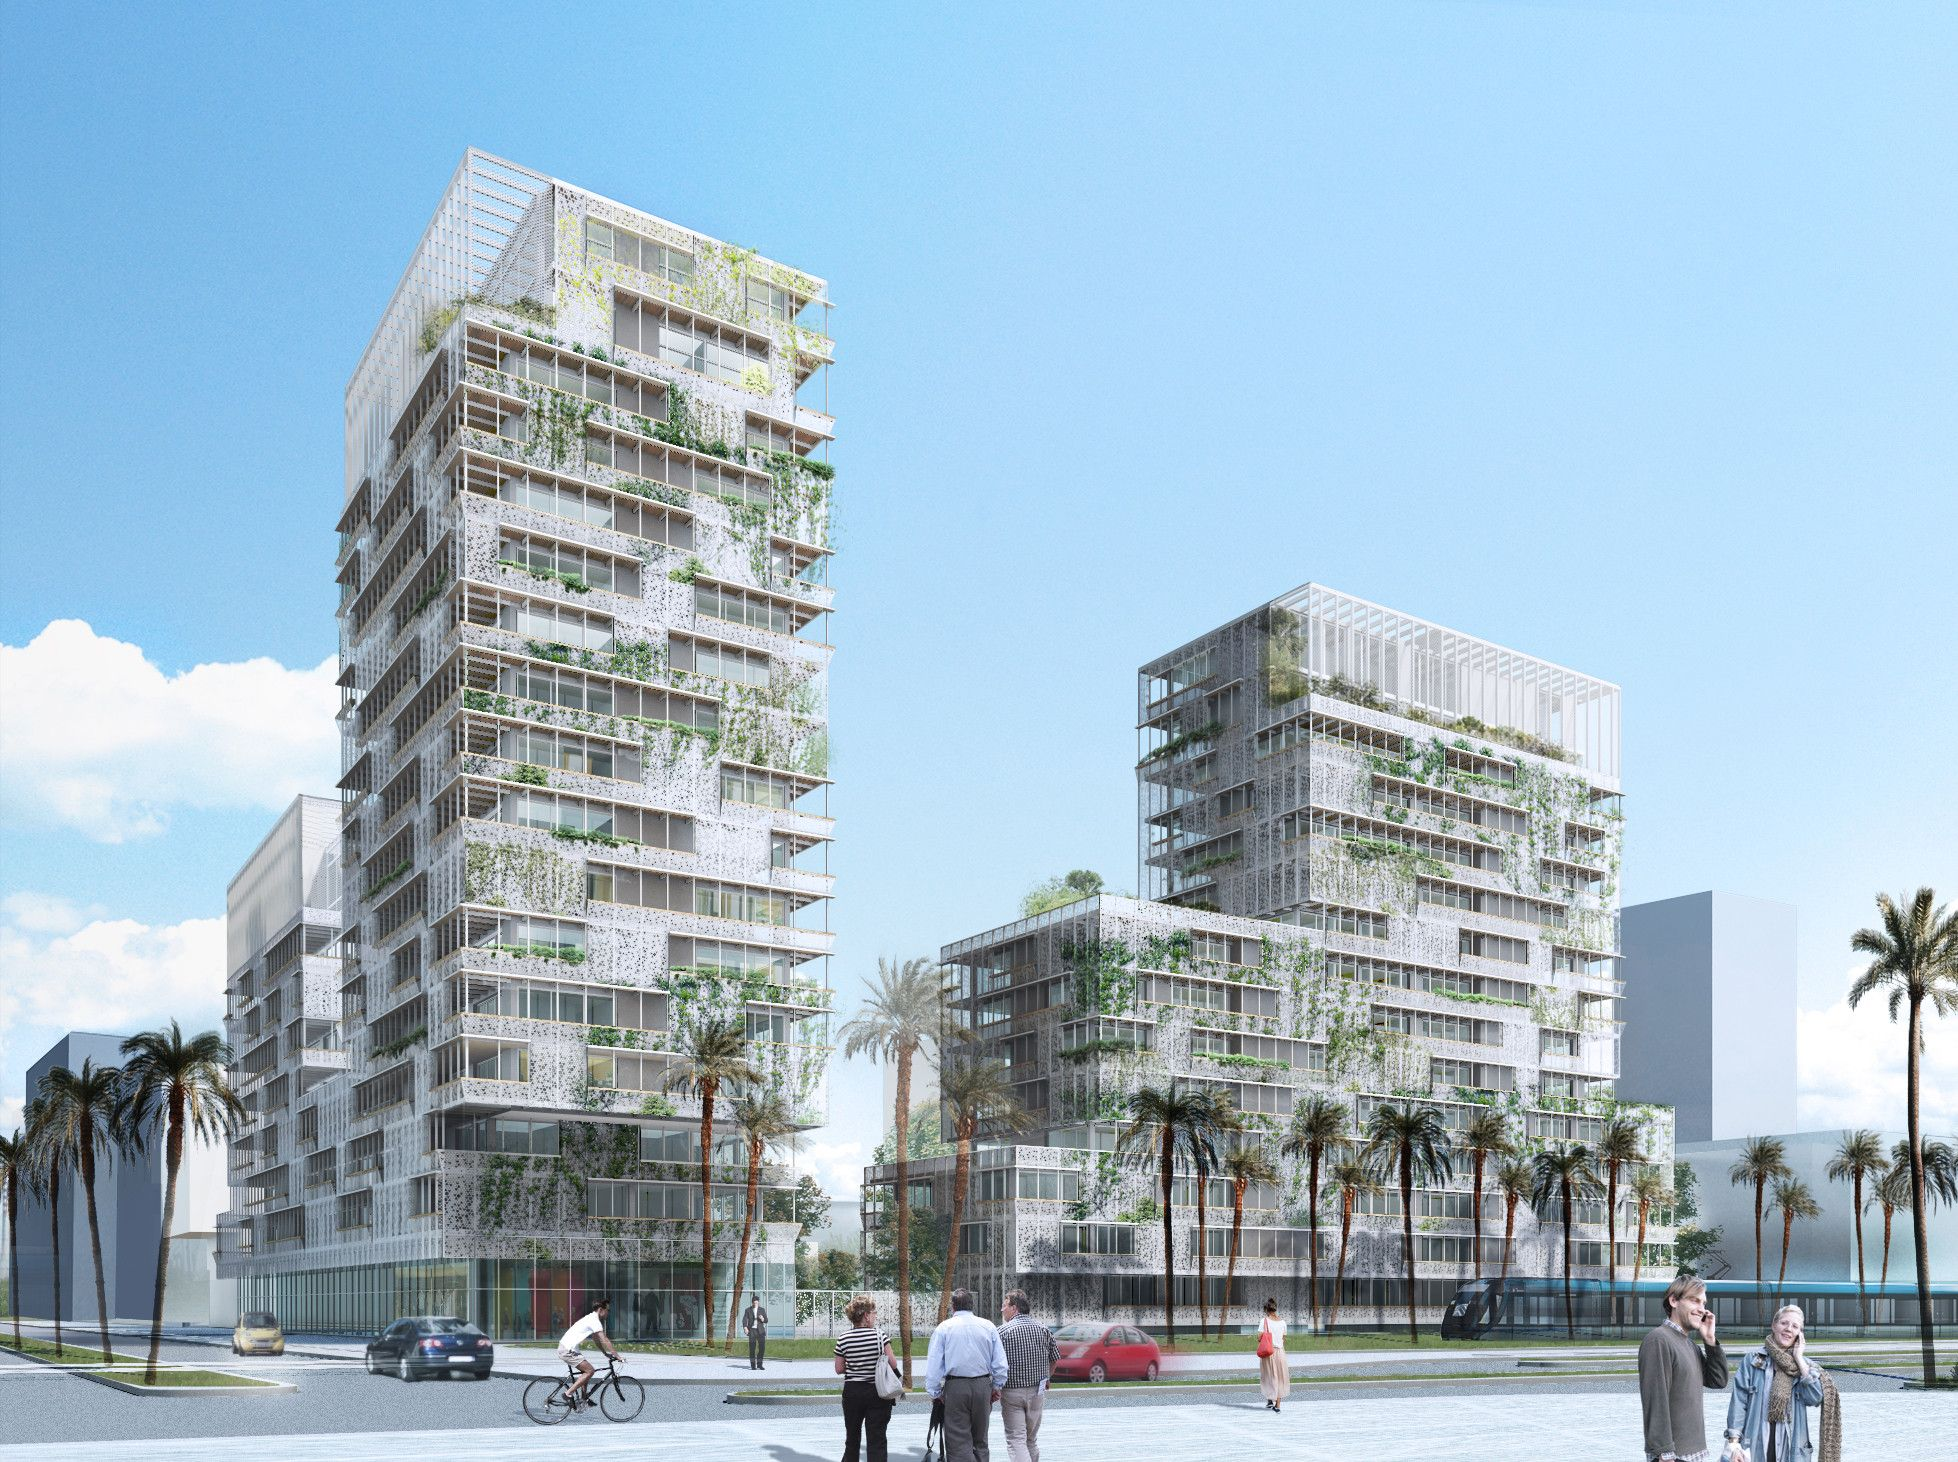 Casablaca Anfa Herreros Arquitectos' Proposal for a MixedUse Building in Morocco is part of Buildings sketch architecture - Designed by Herreros Arquitectos in Casablanca,Morocco Herreros Arquitectosjust sent us their recent project for a mixeduse building in Casablanca, Morocco  Resulting fro